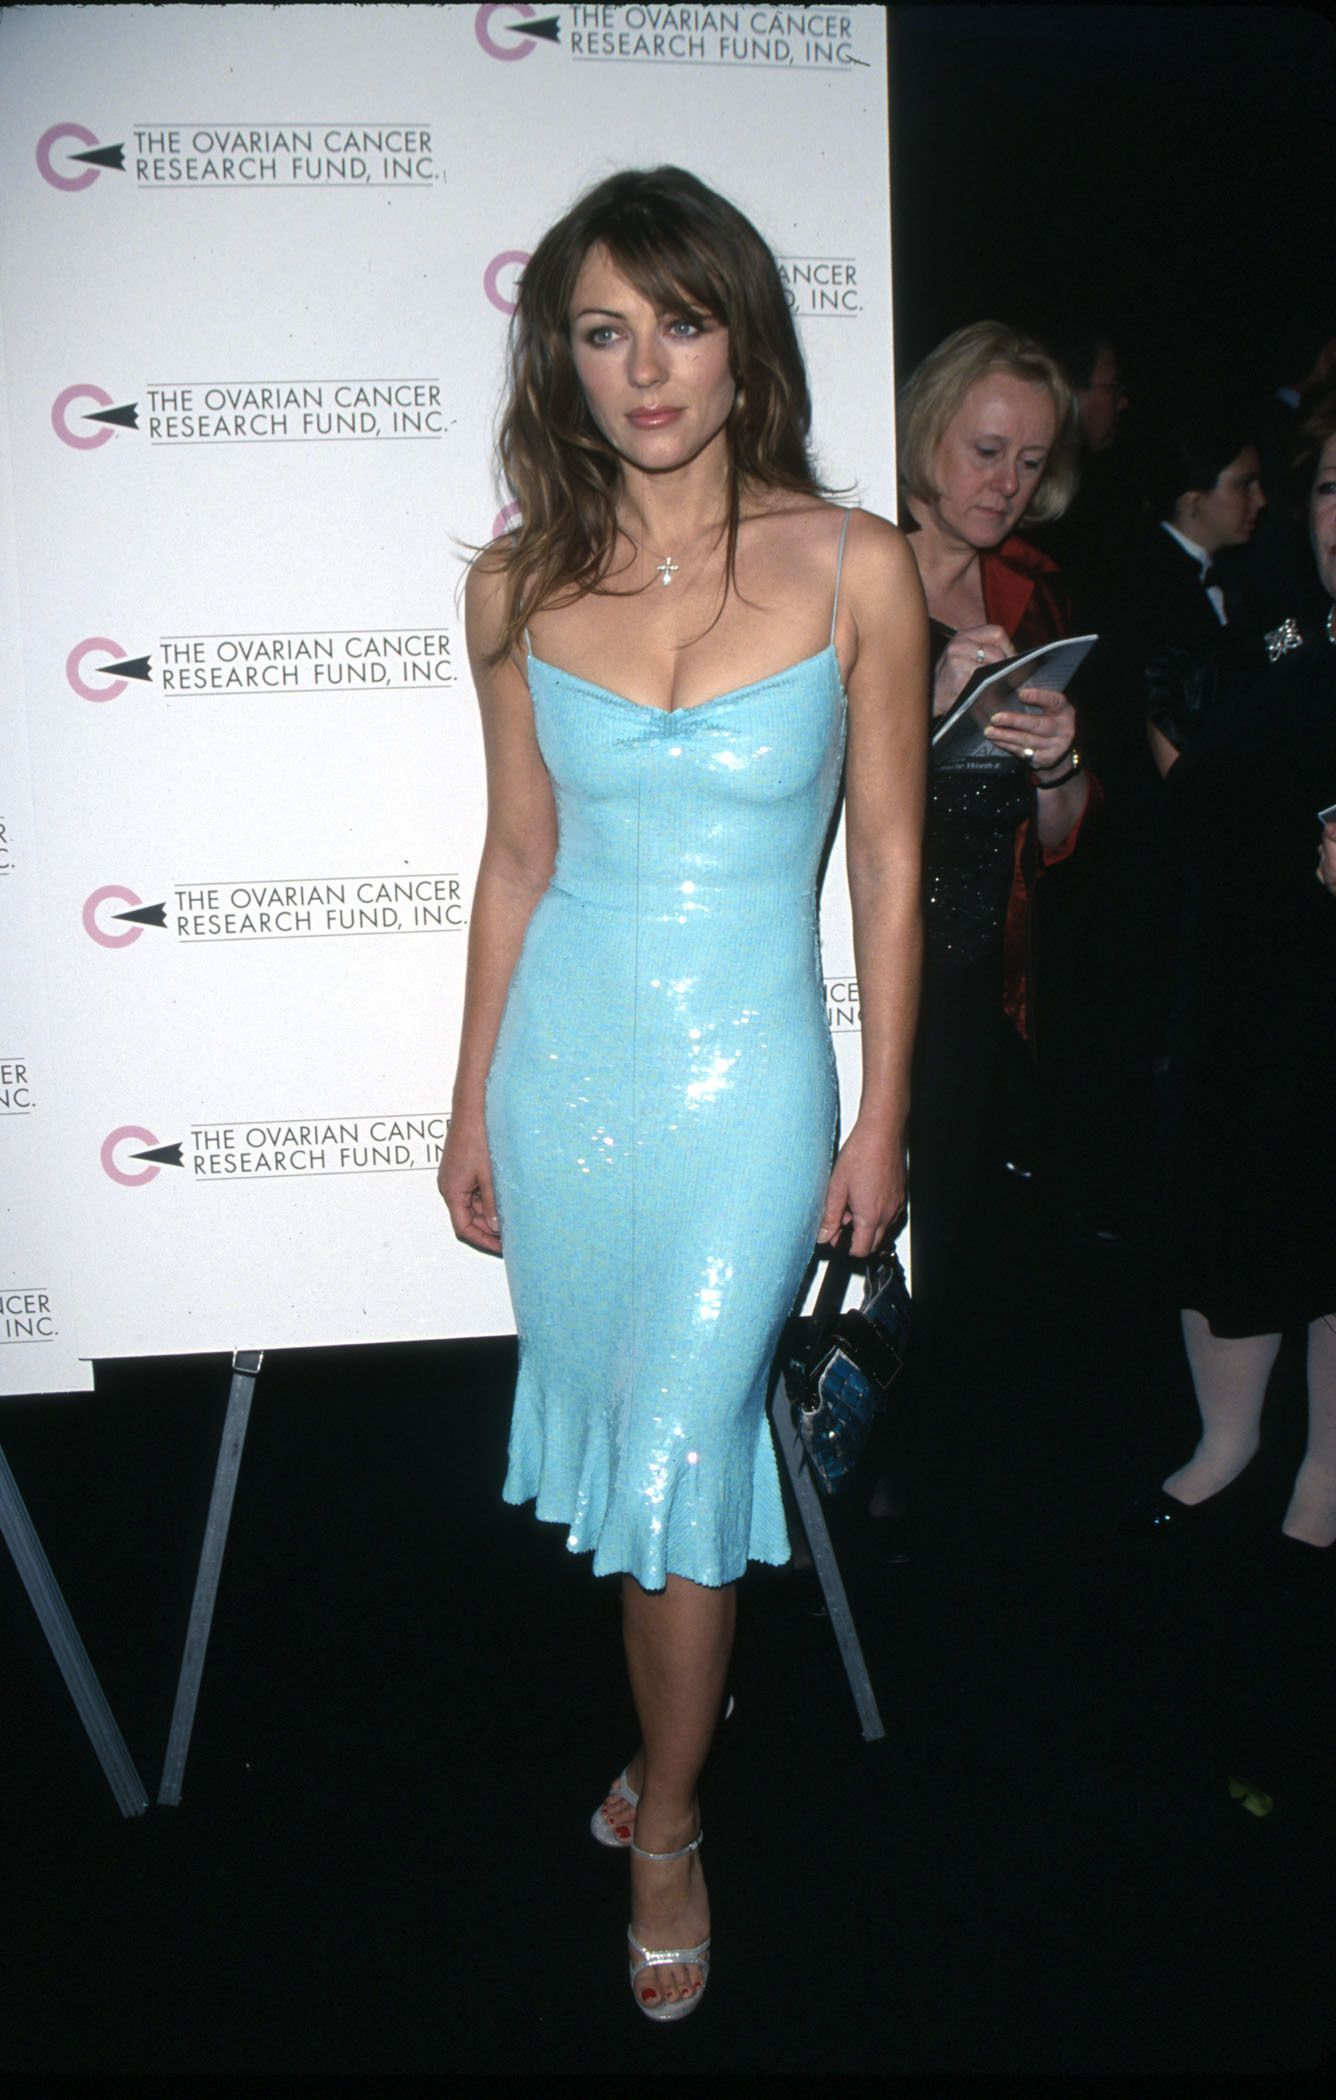 Elizabeth Hurley once took the red carpet in a dress held together by a few  safety pins: Pics in 2021 | Liz hurley dress, Elizabeth hurley, Hurley dress